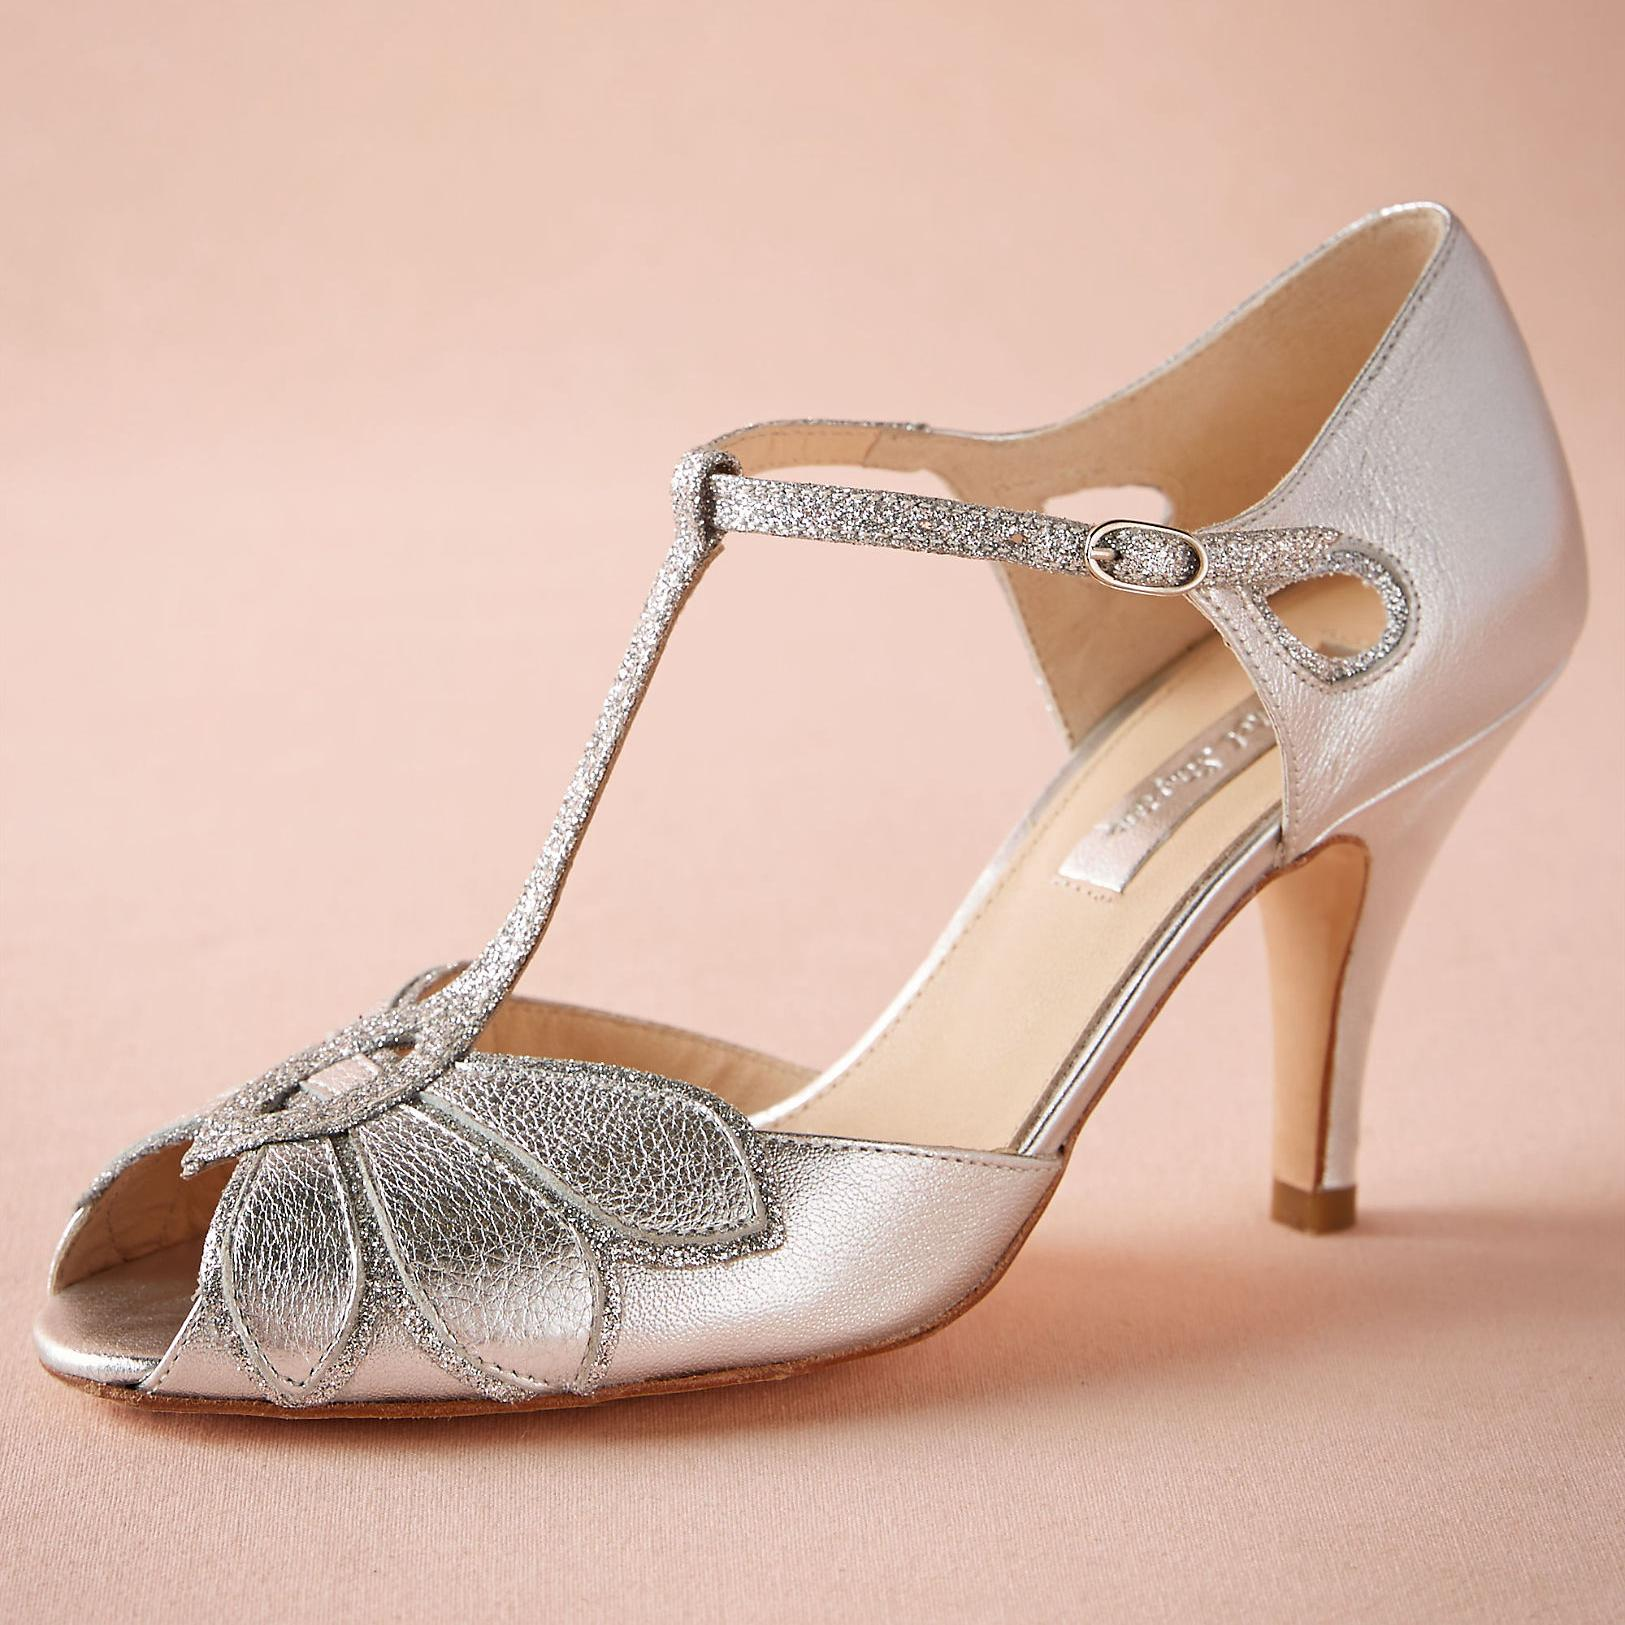 Silver Wedding Shoes Glitter Pumps Mimosa T Straps Buckle Closure Leather  Party Dance 3 High Heels Women Sandals Open Toe Bridal Shoes Wedding  Bridesmaid ...